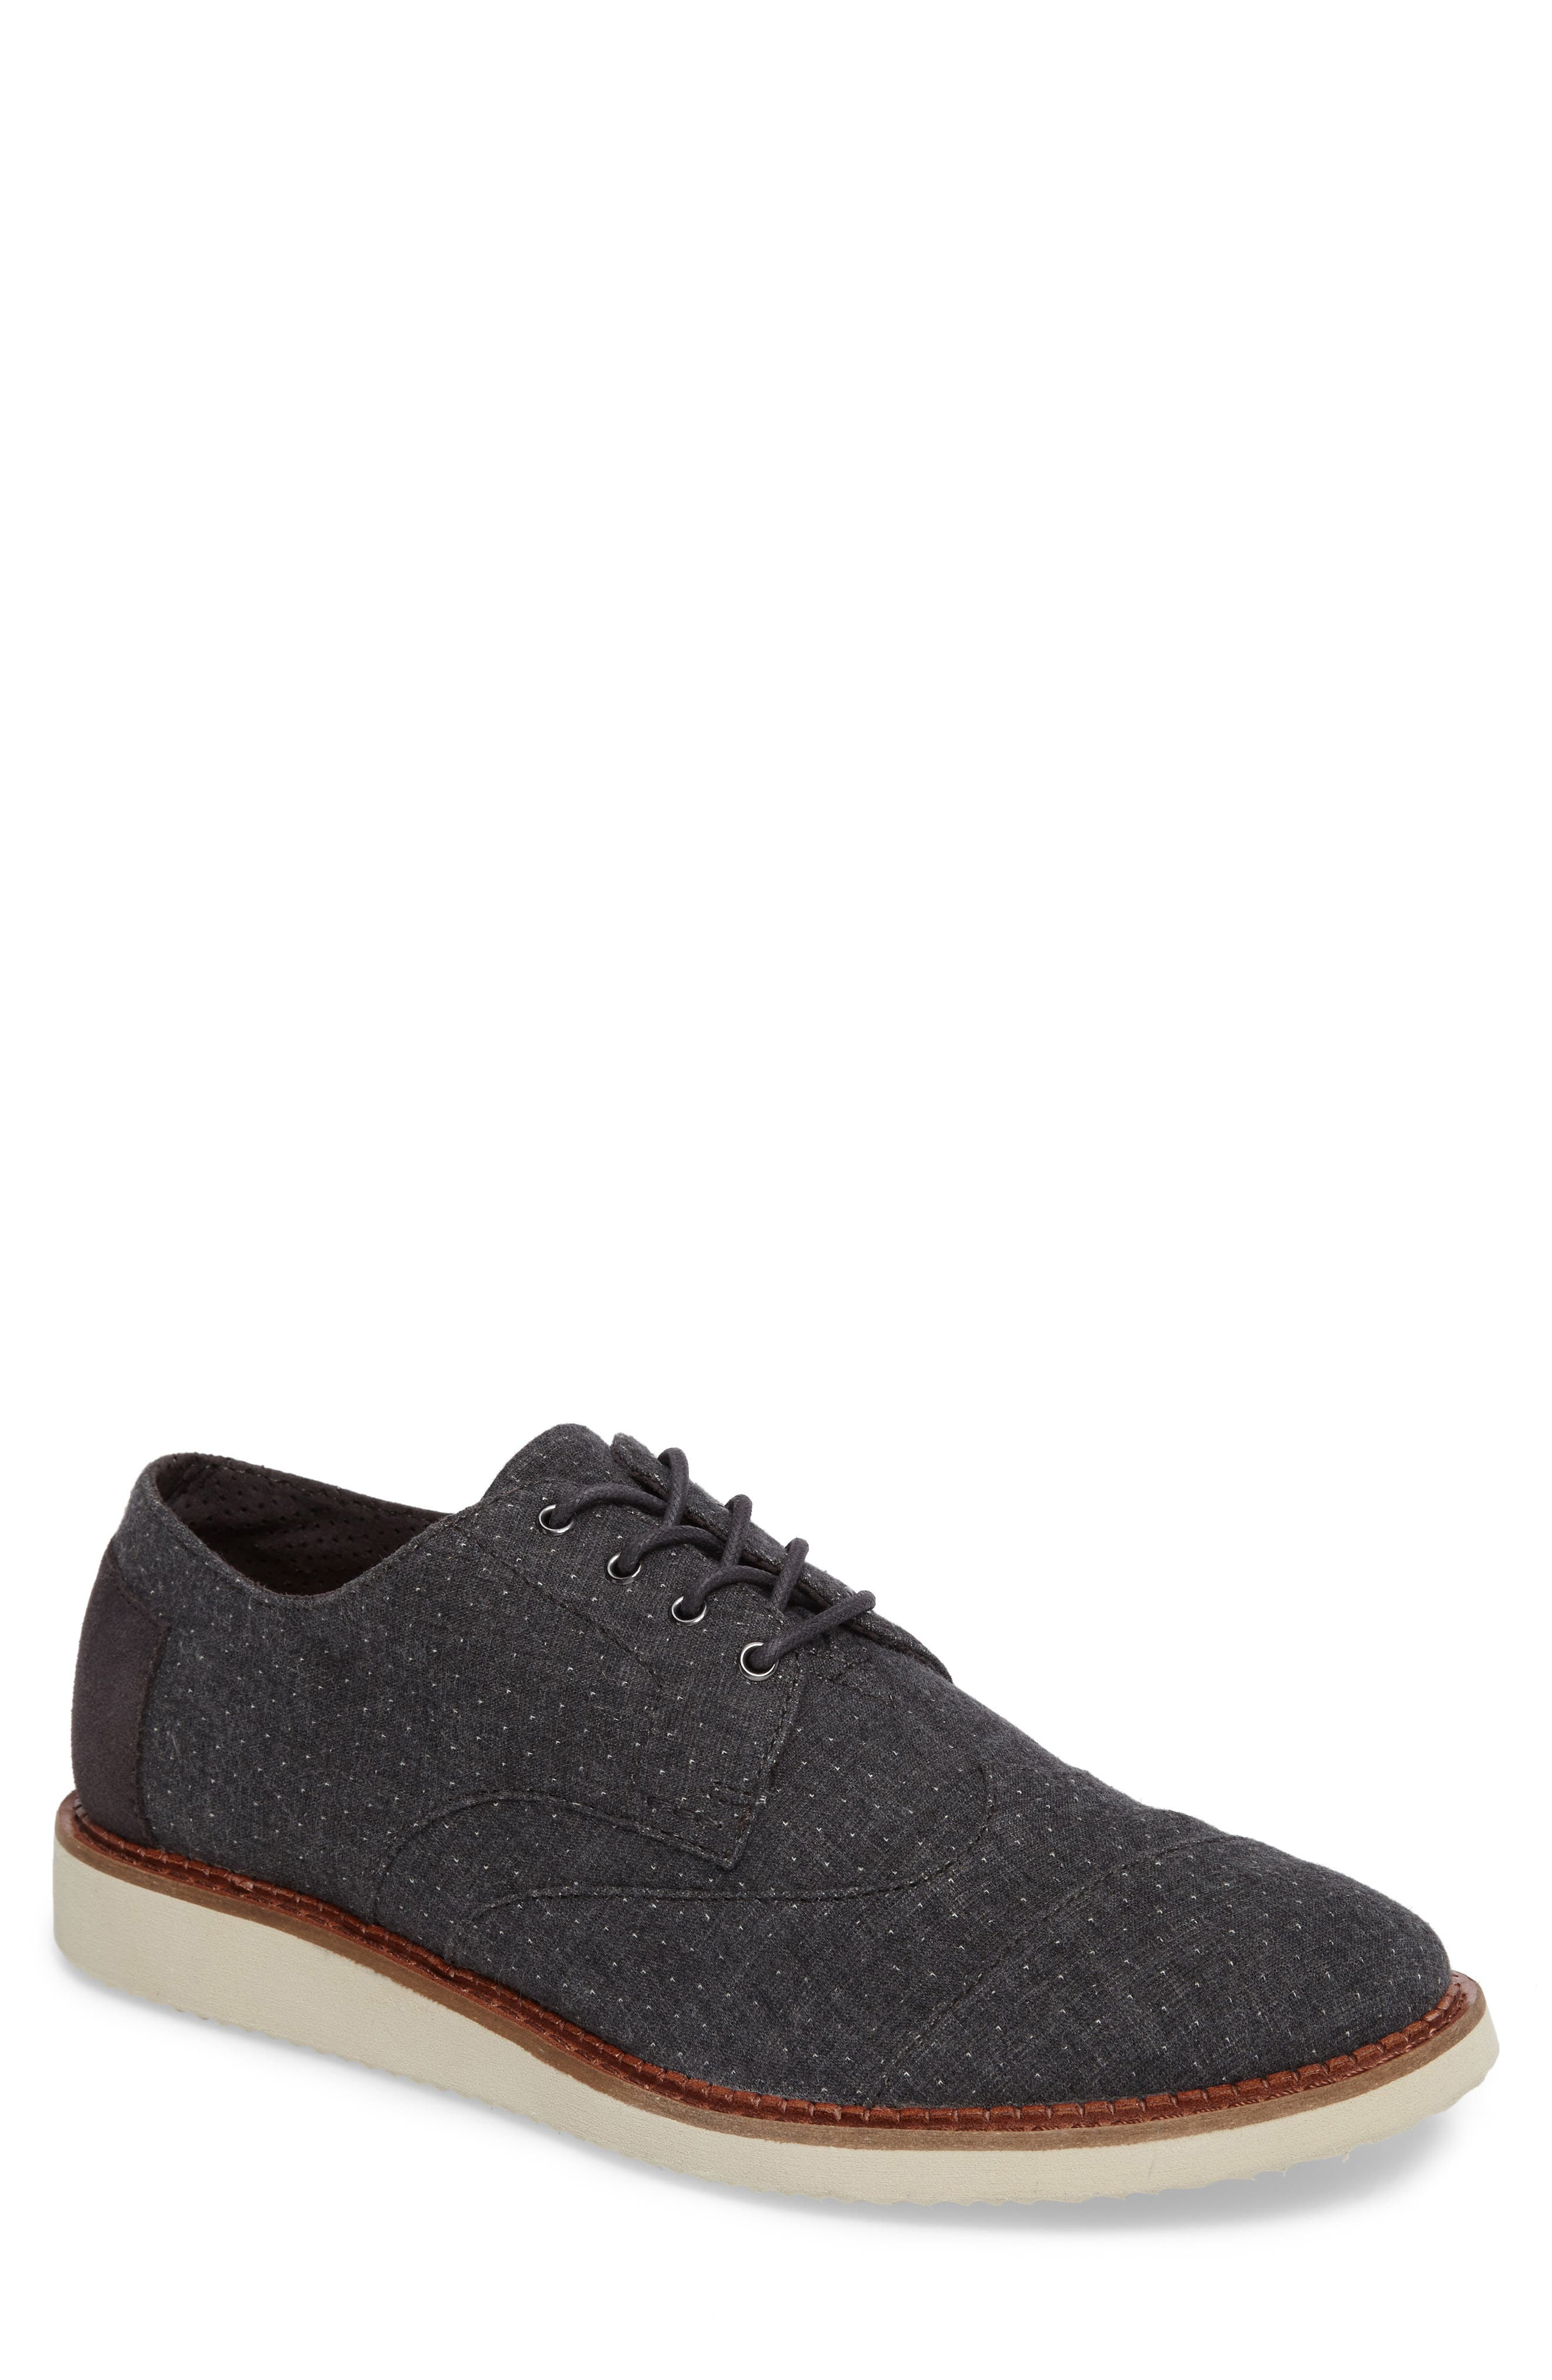 Alternate Image 1 Selected - TOMS 'Classic Brogue' Cotton Twill Derby (Men)